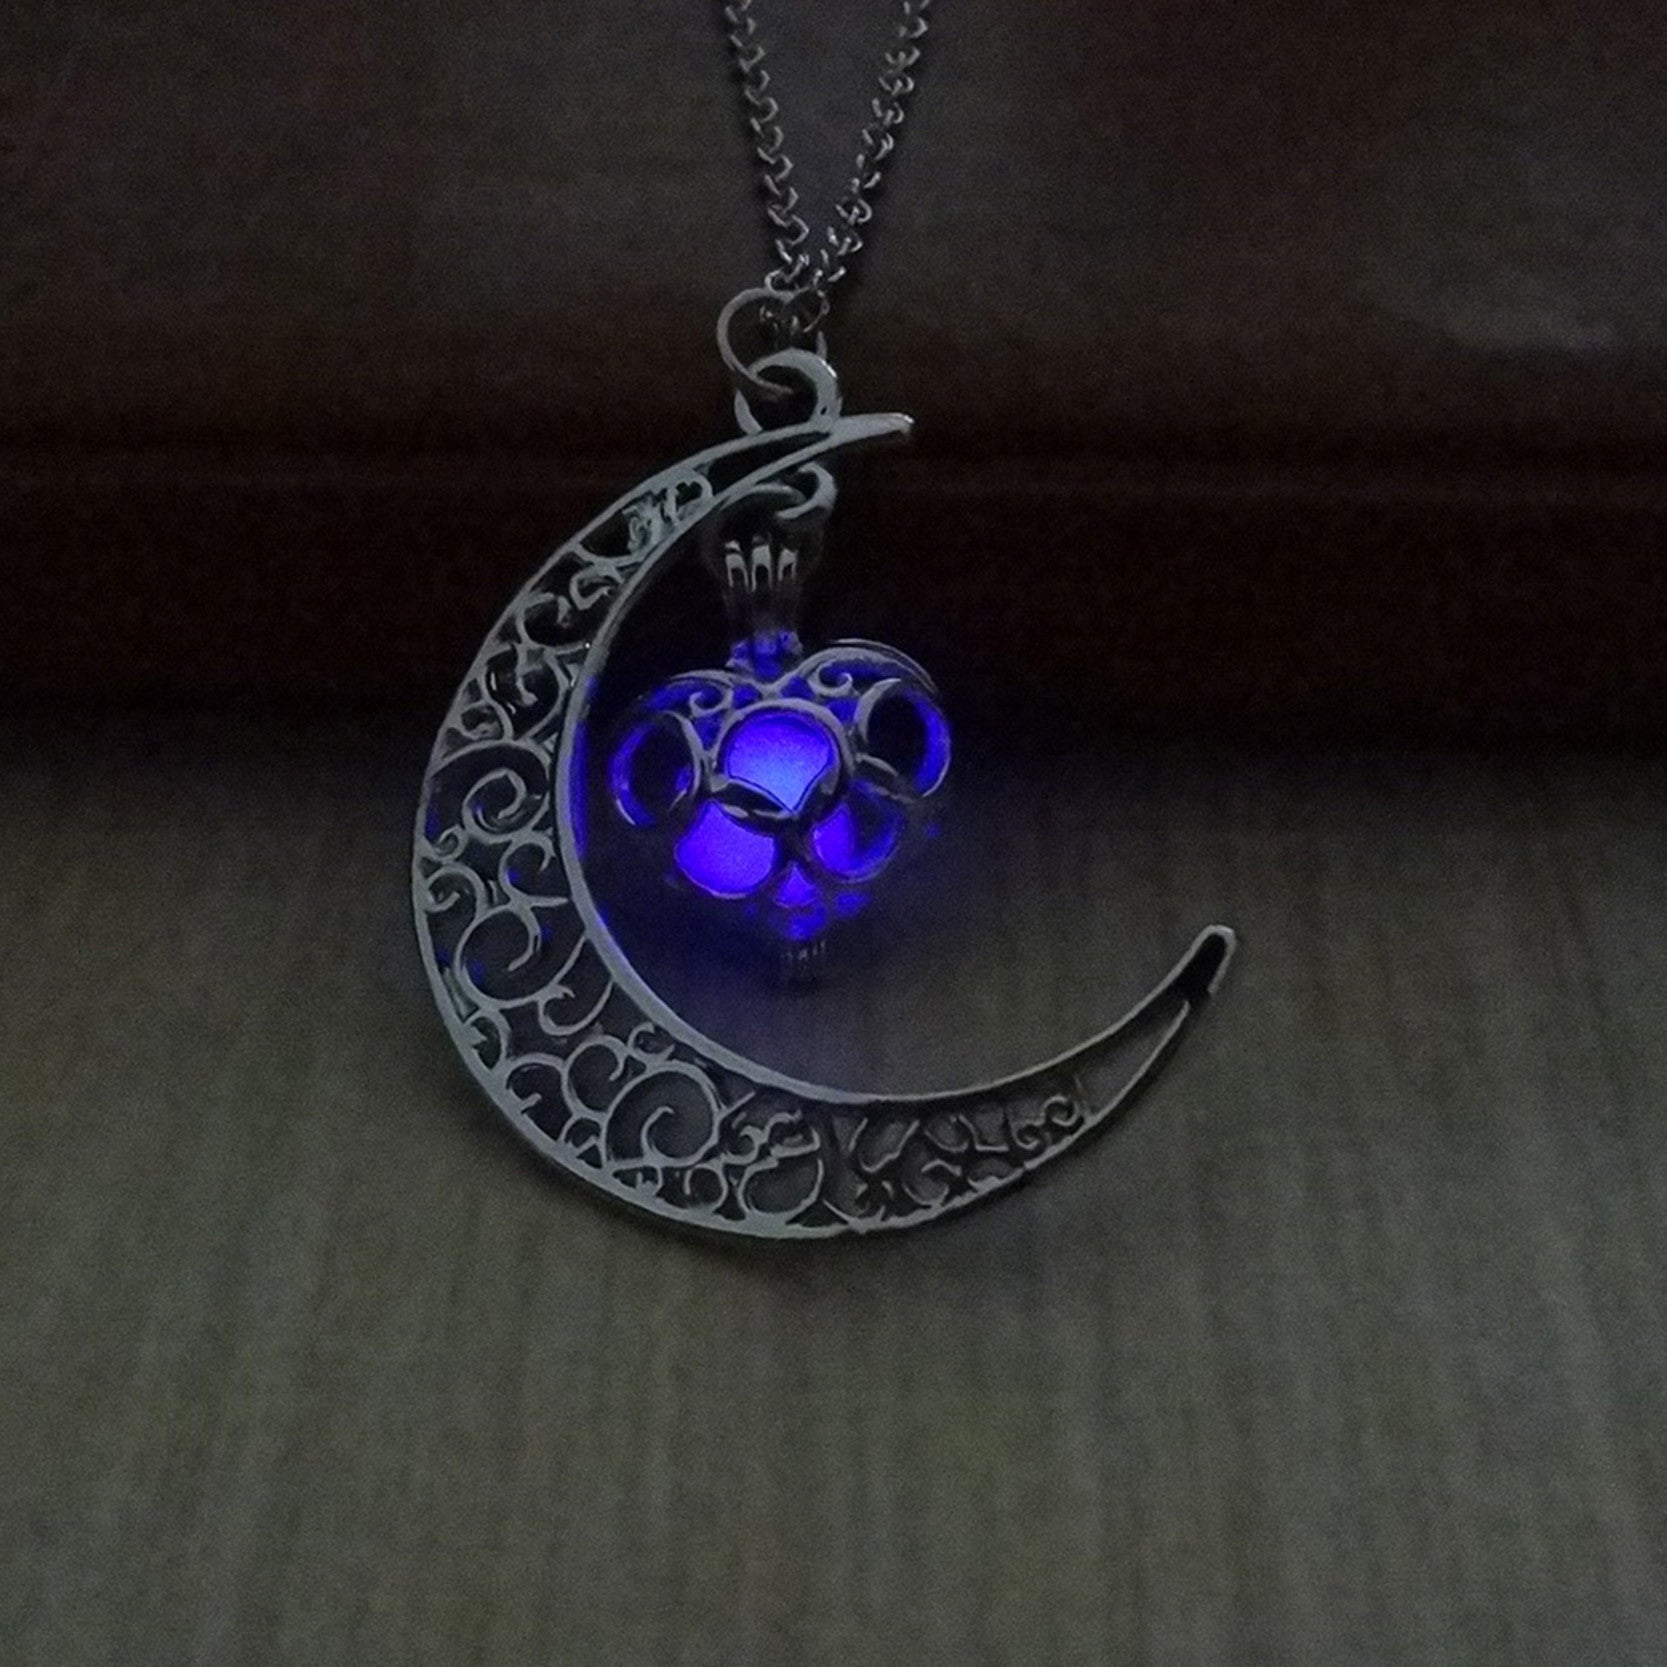 cyan etsy necklace karlworldart on glow jewelry of by tree glowing pin wish forest the pendant